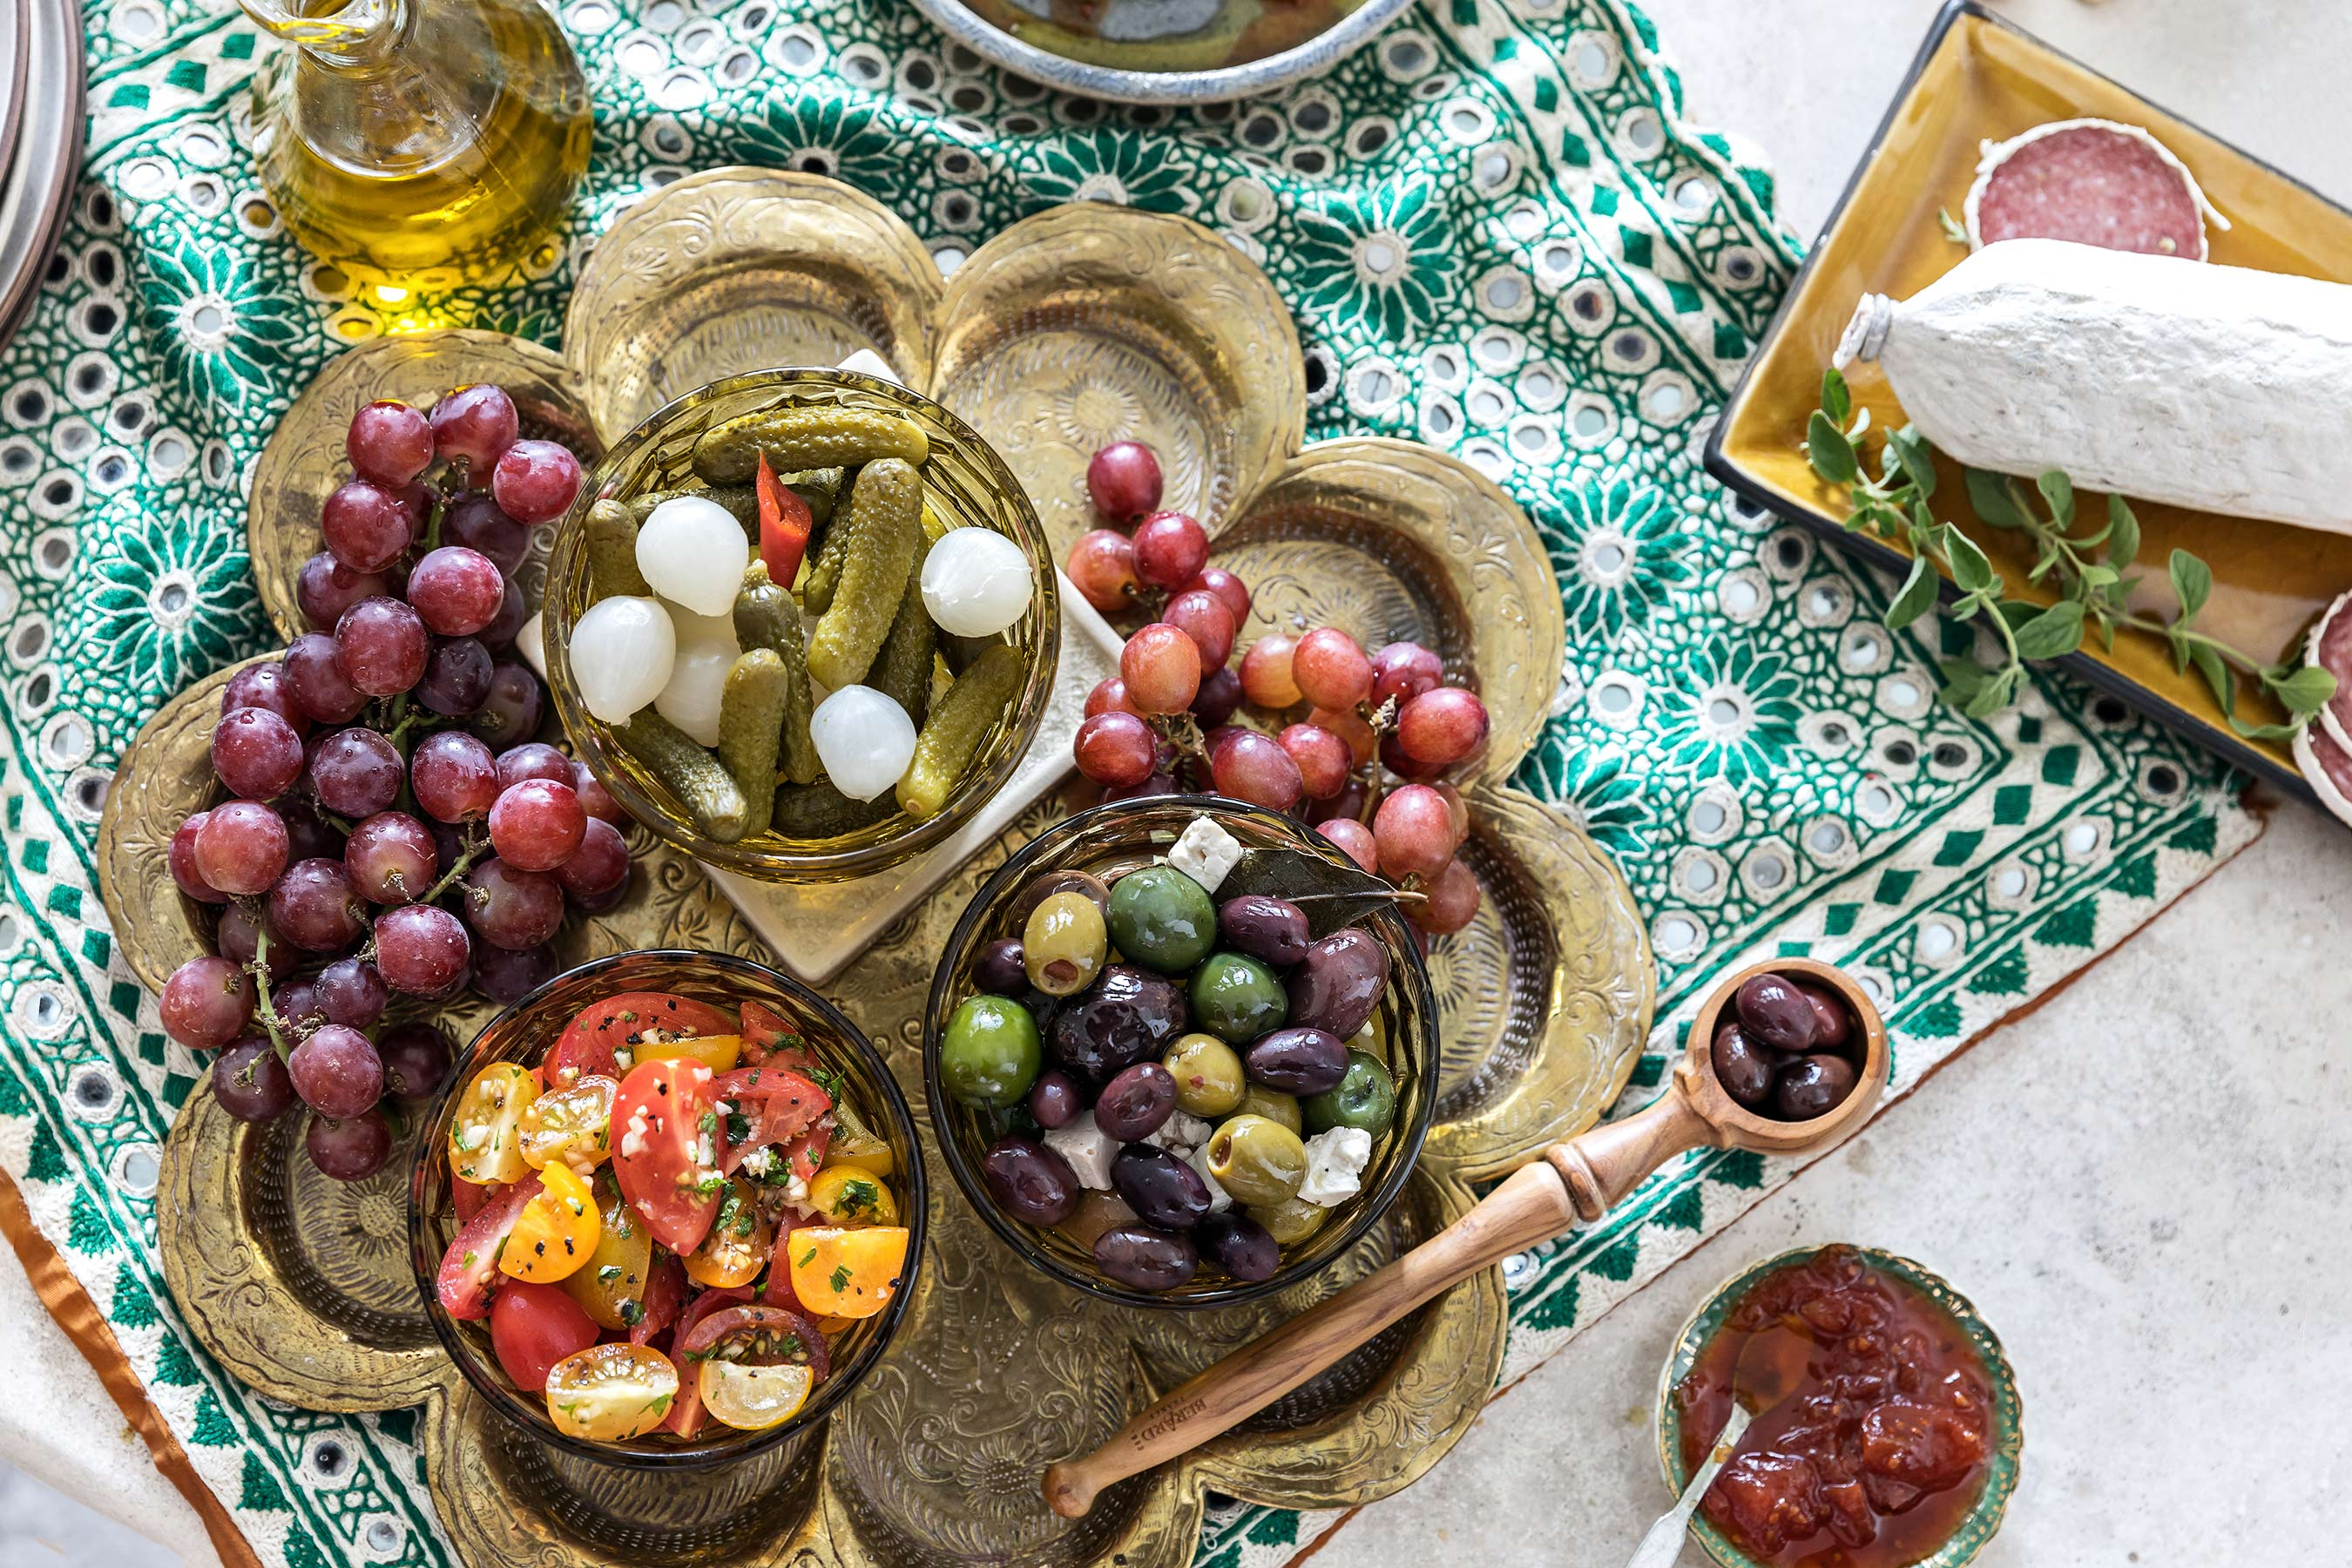 Mediterranean platter with olives, tomatoes, gherkins and grapes.